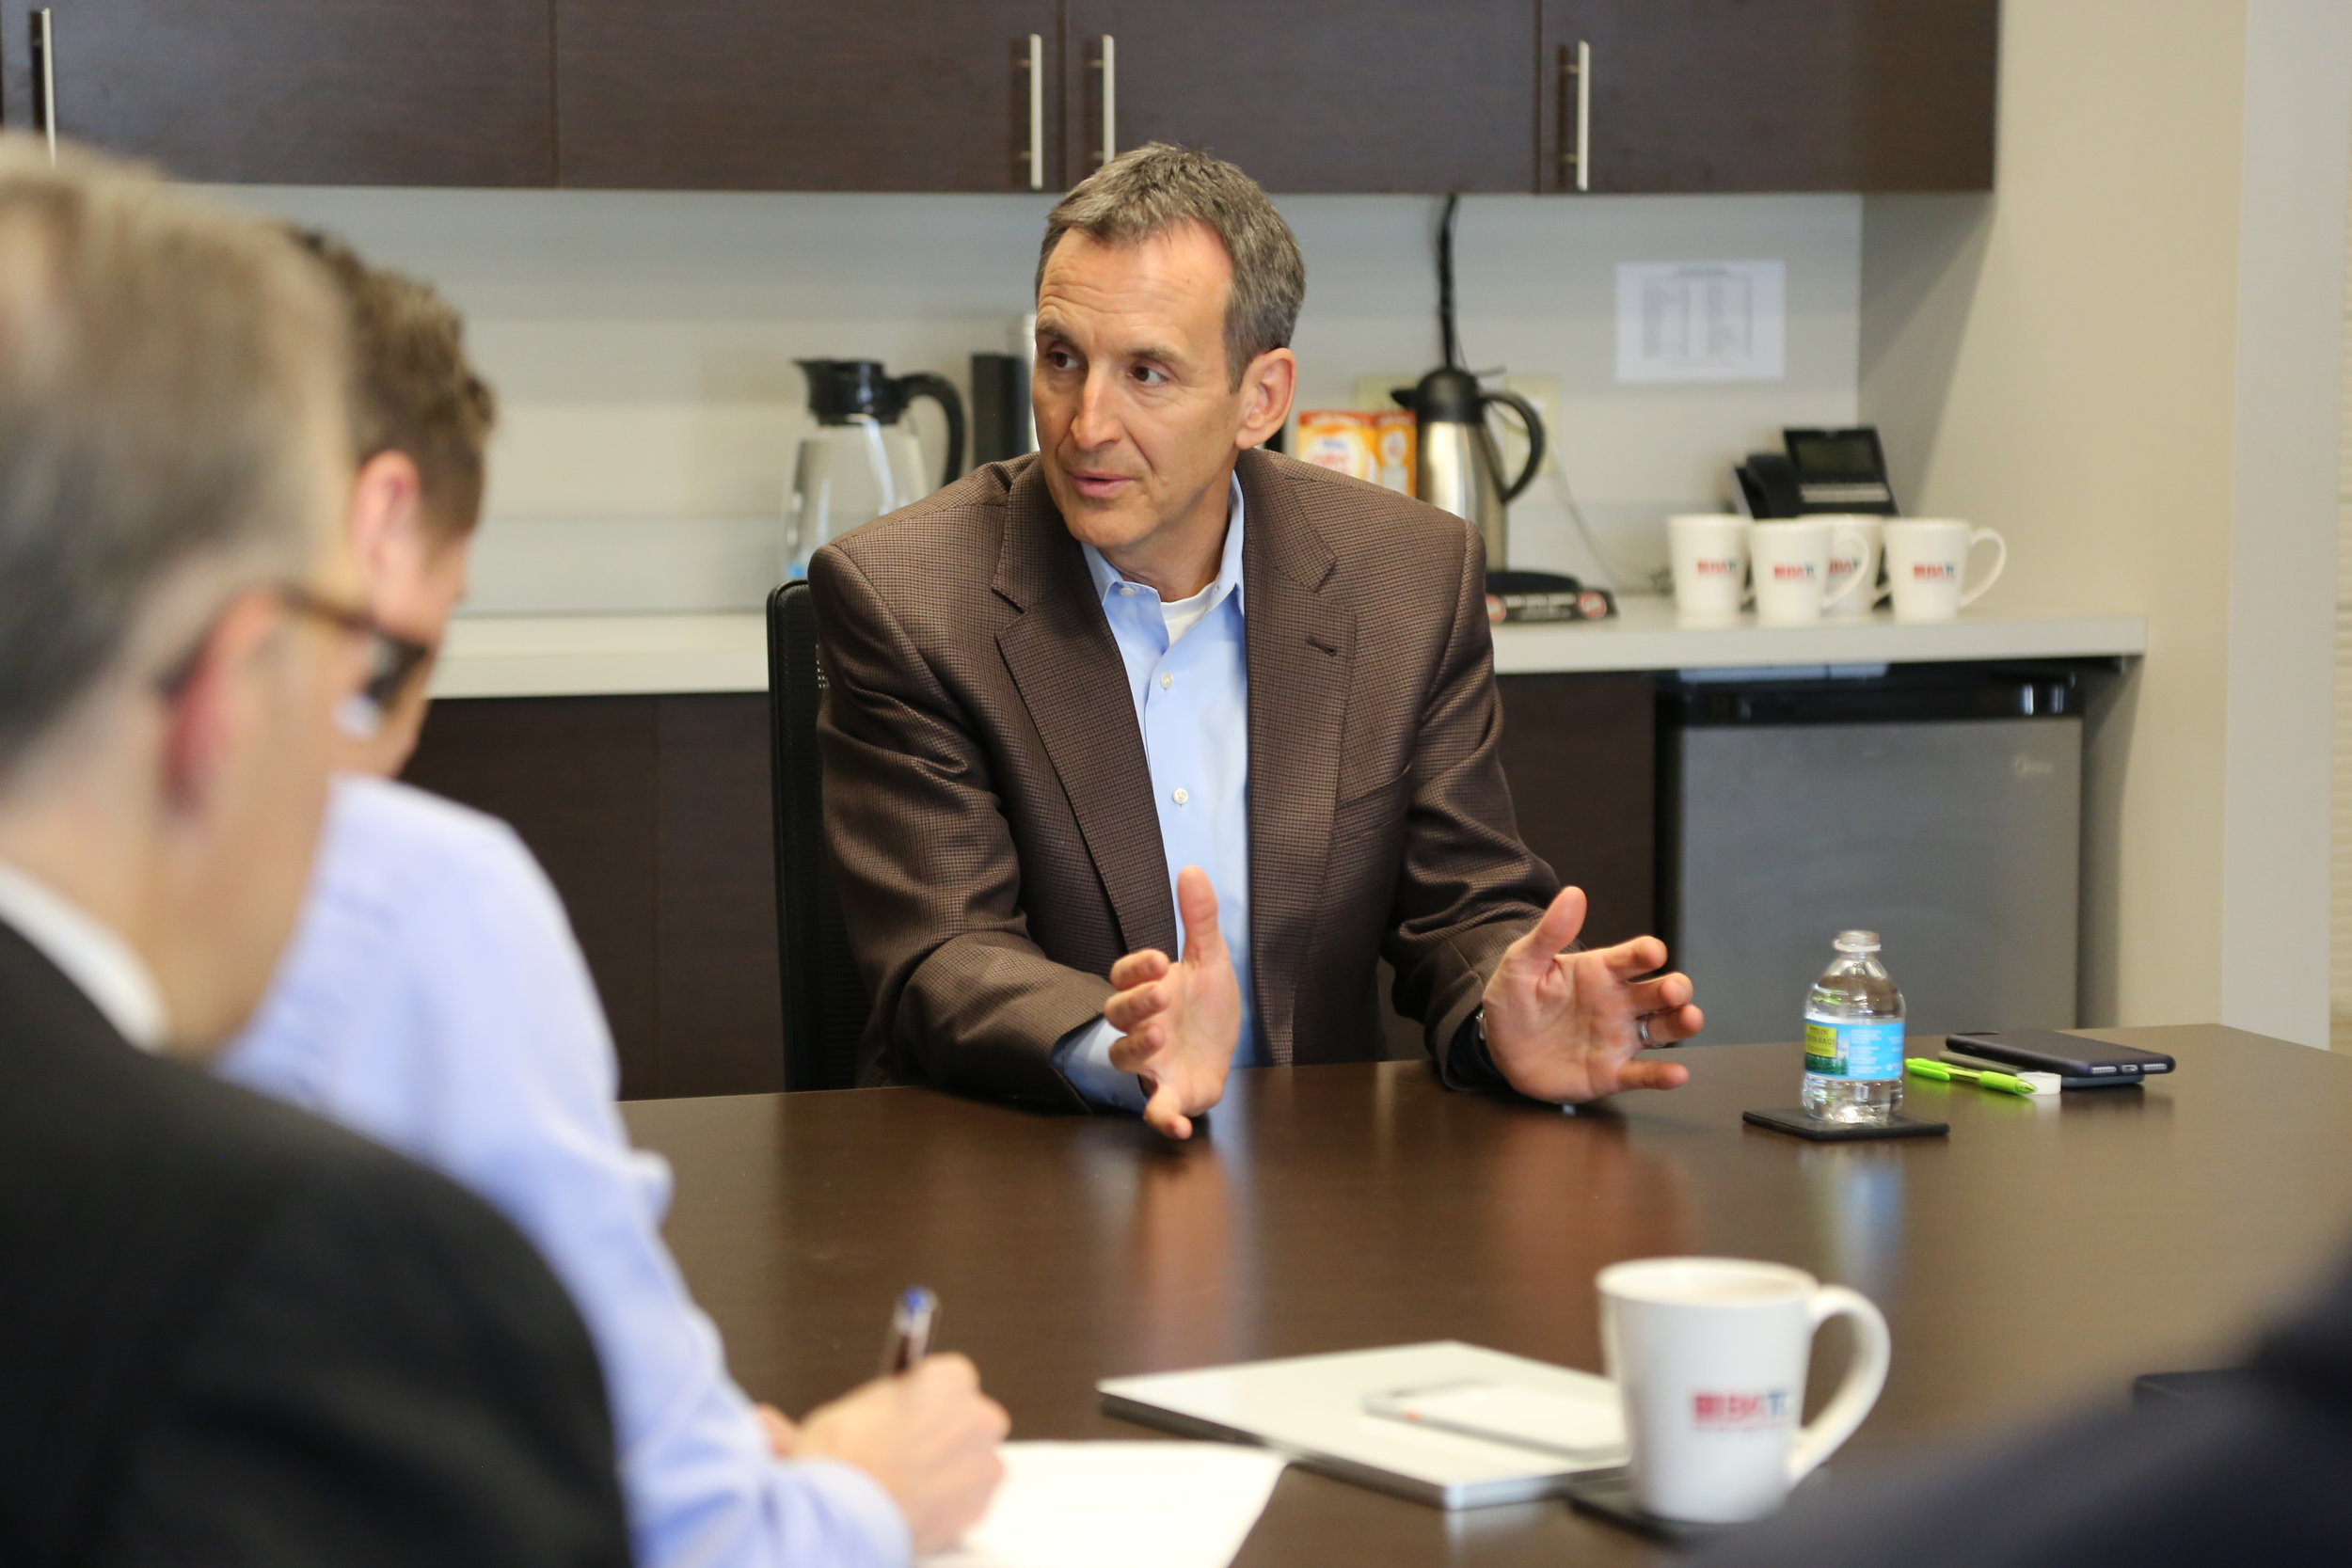 Former Governor Tim Pawlenty (R, Eagan), 2018 Gubernatorial Candidate, discusses housing issues with Housing First Minnesota leaders.